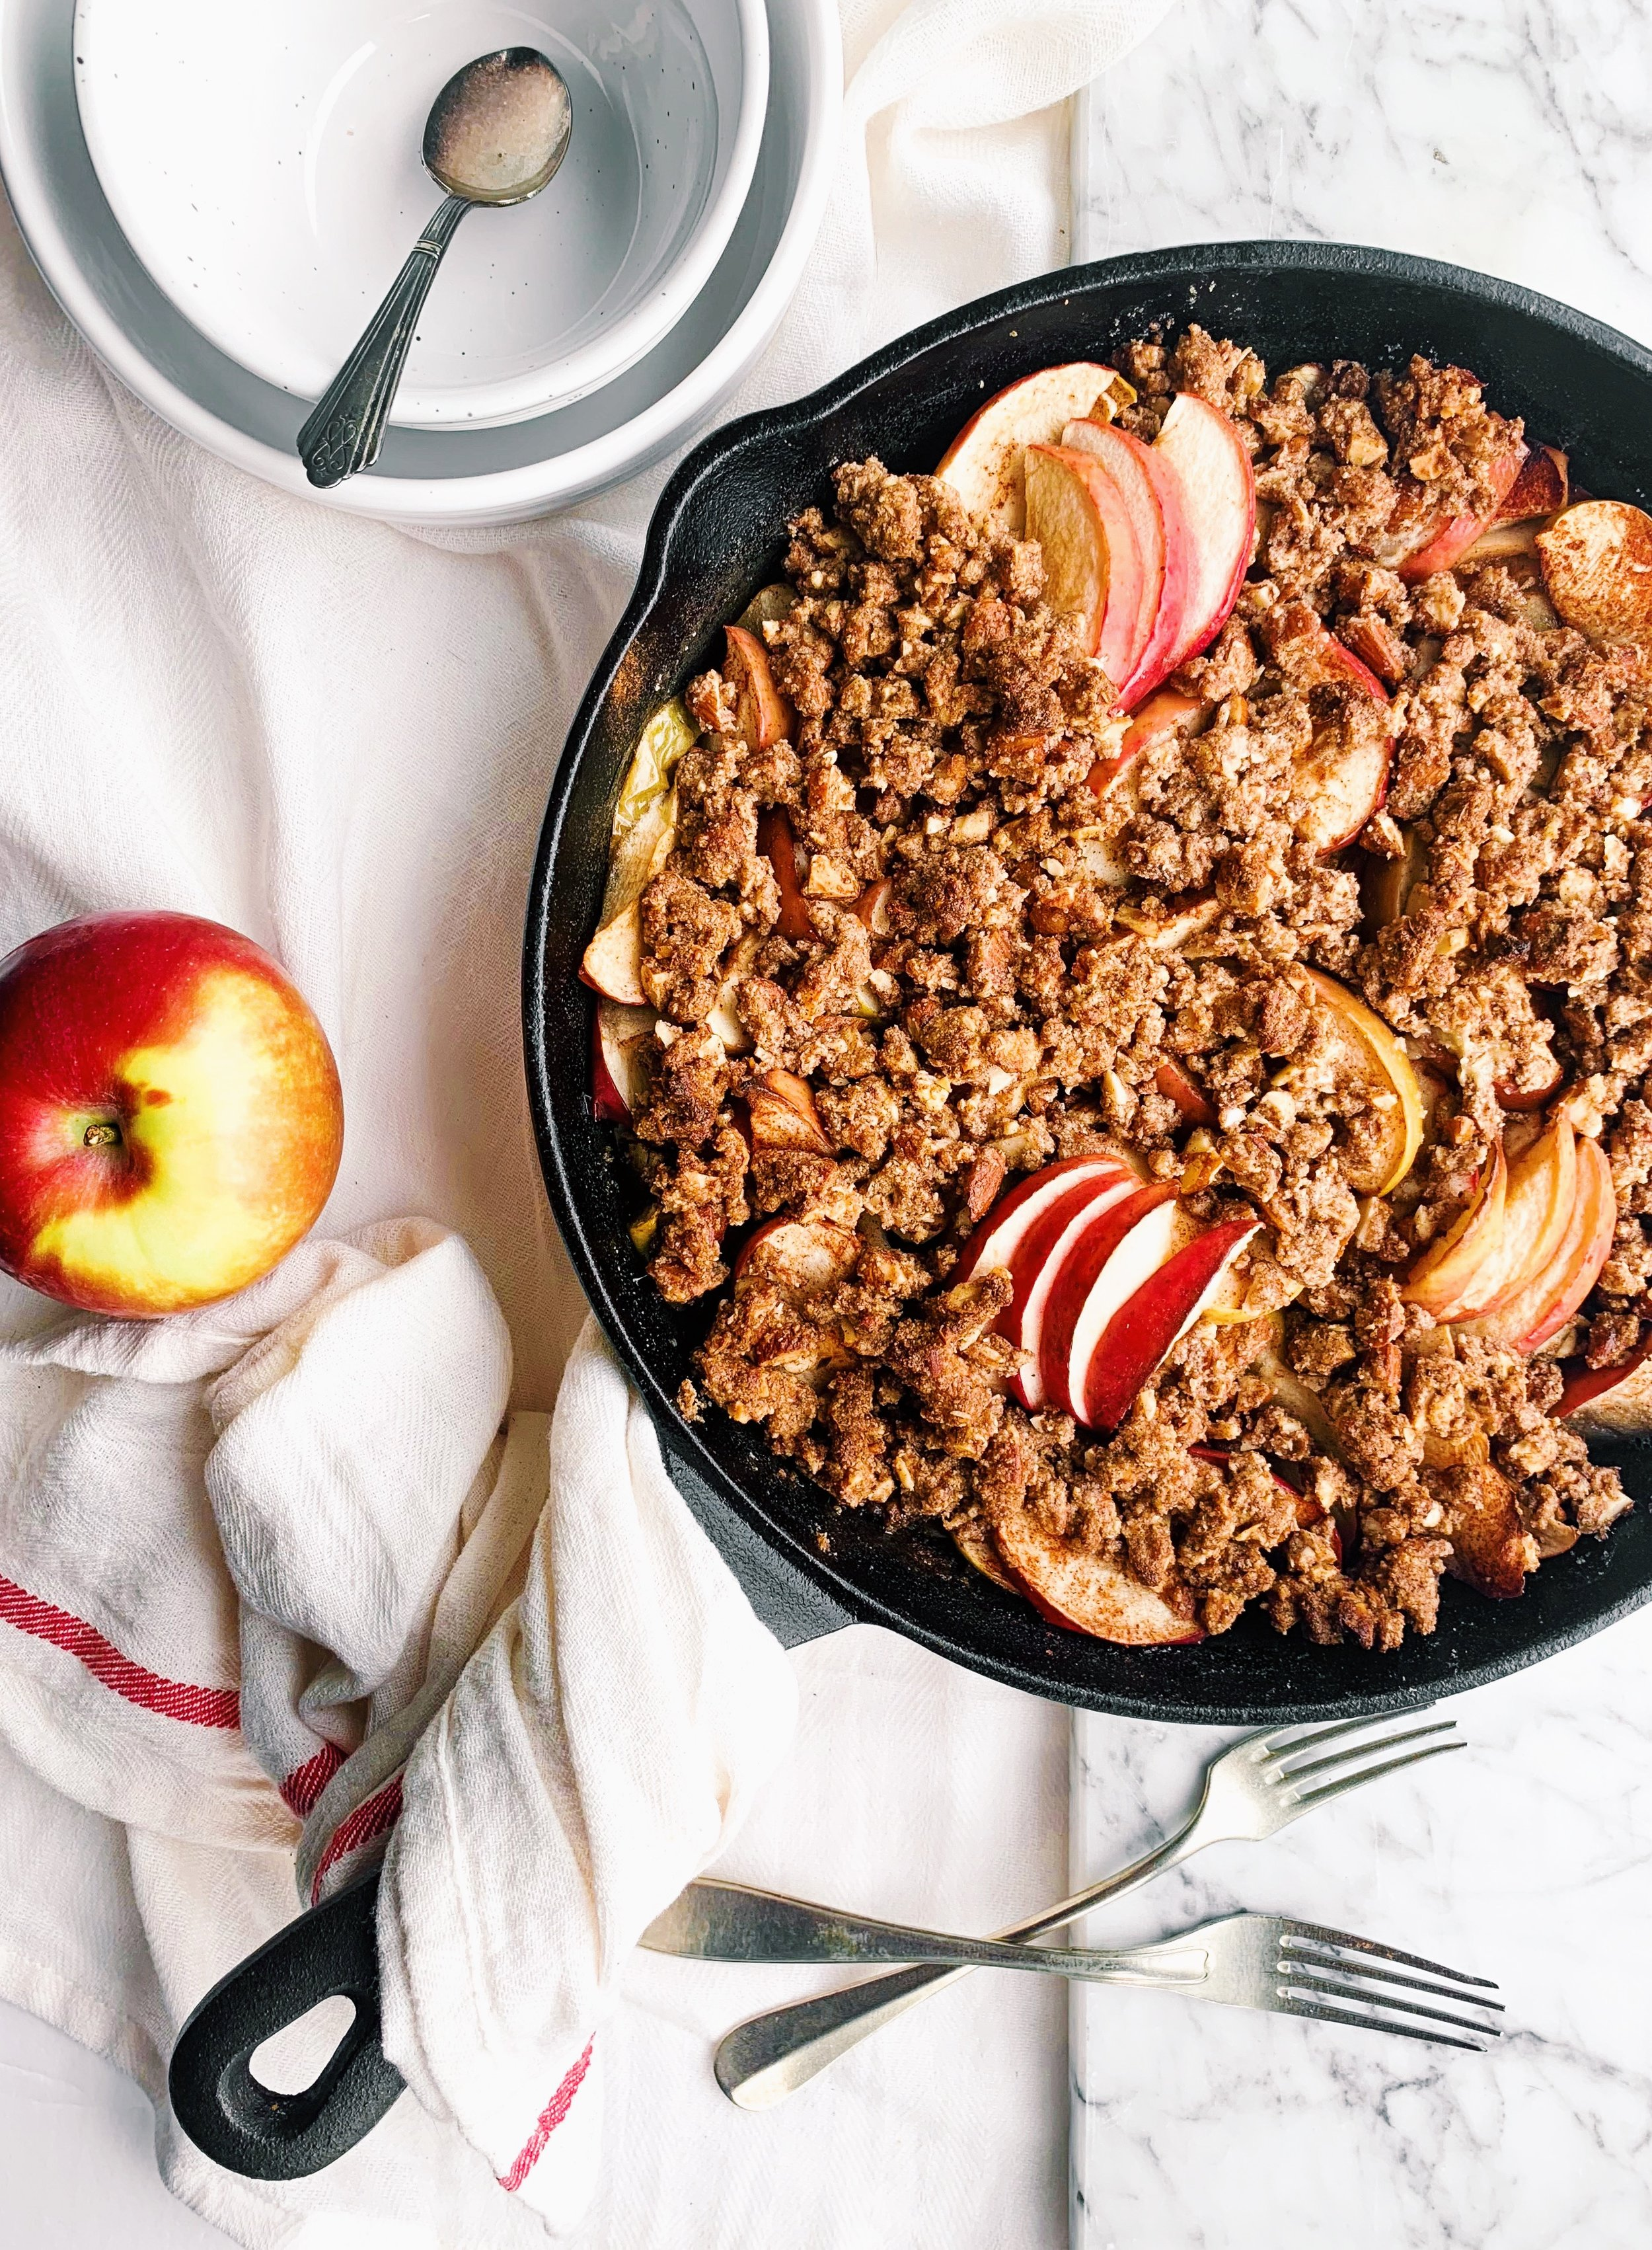 Vegan, paleo refined-sugar free apple crumble that is a perfect fall treat (or breakfast?!) that is perfectly cinnamony and delicious! - Foody First - #paleo #vegan #glutenfree #applecrumble #grainfree #crumble